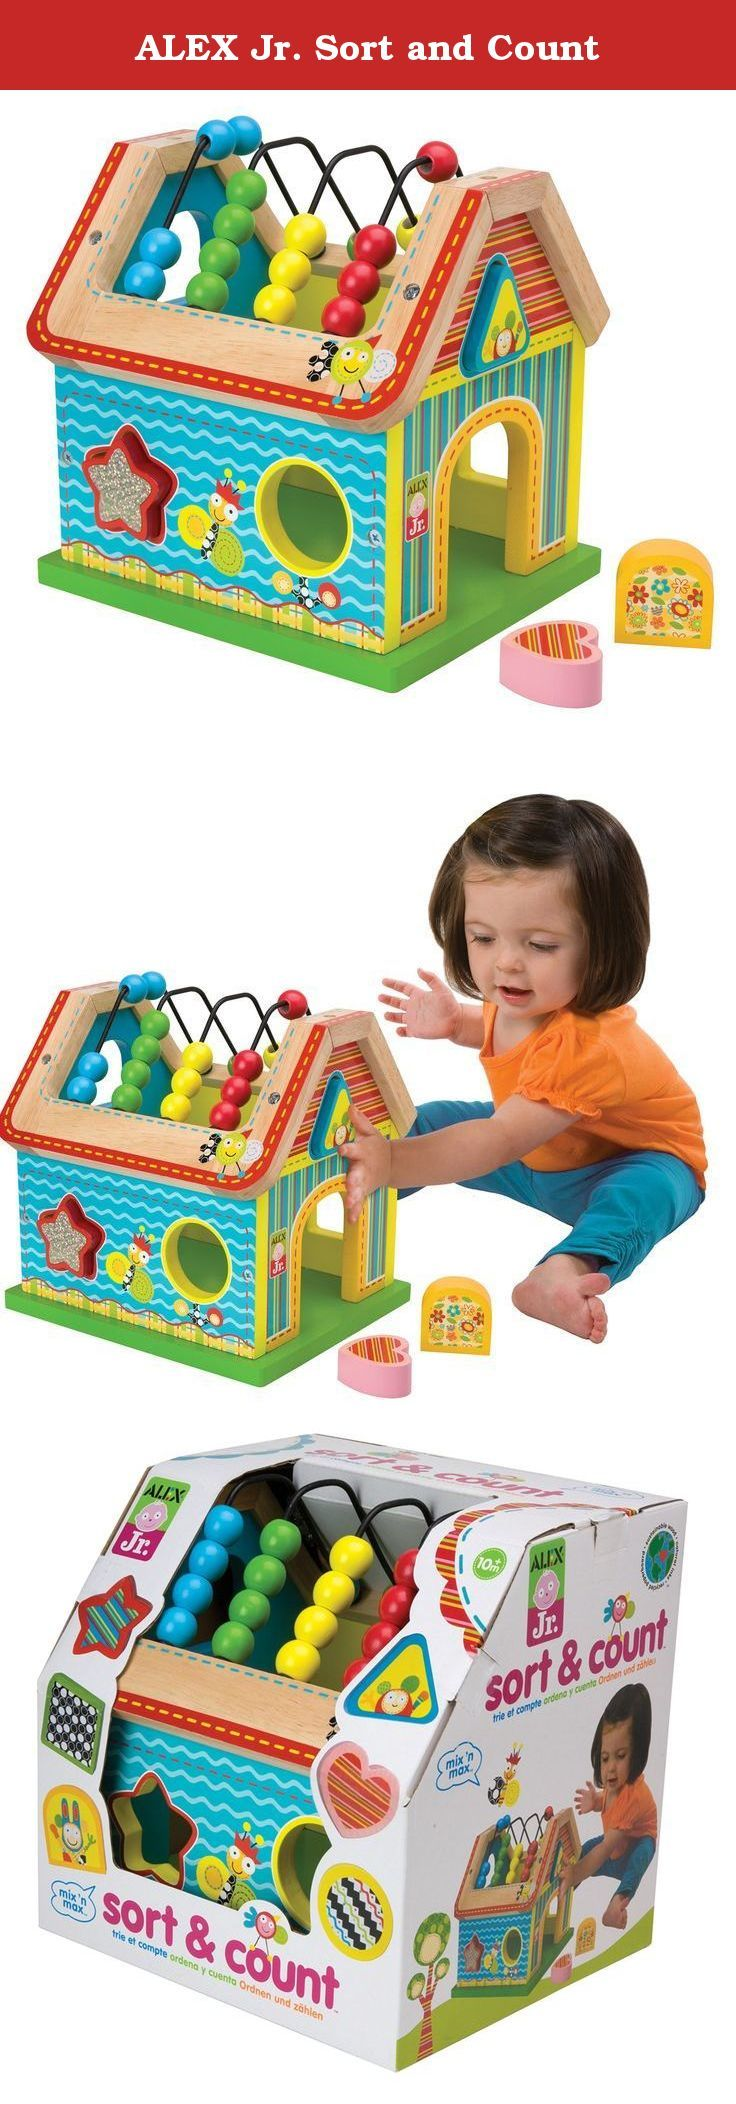 ALEX Jr. Sort and Count. ALEX Jr. Sort and Count is a wooden shape sorting house. Every side includes openings for shape sorting. Wooden house shape also has beads for counting on the roof. Includes 6 colorful shapes. Made of wood in bright colors and whimsical graphics. Part of the mix 'n max line of baby toys. Perfect for ages 10 months and up.